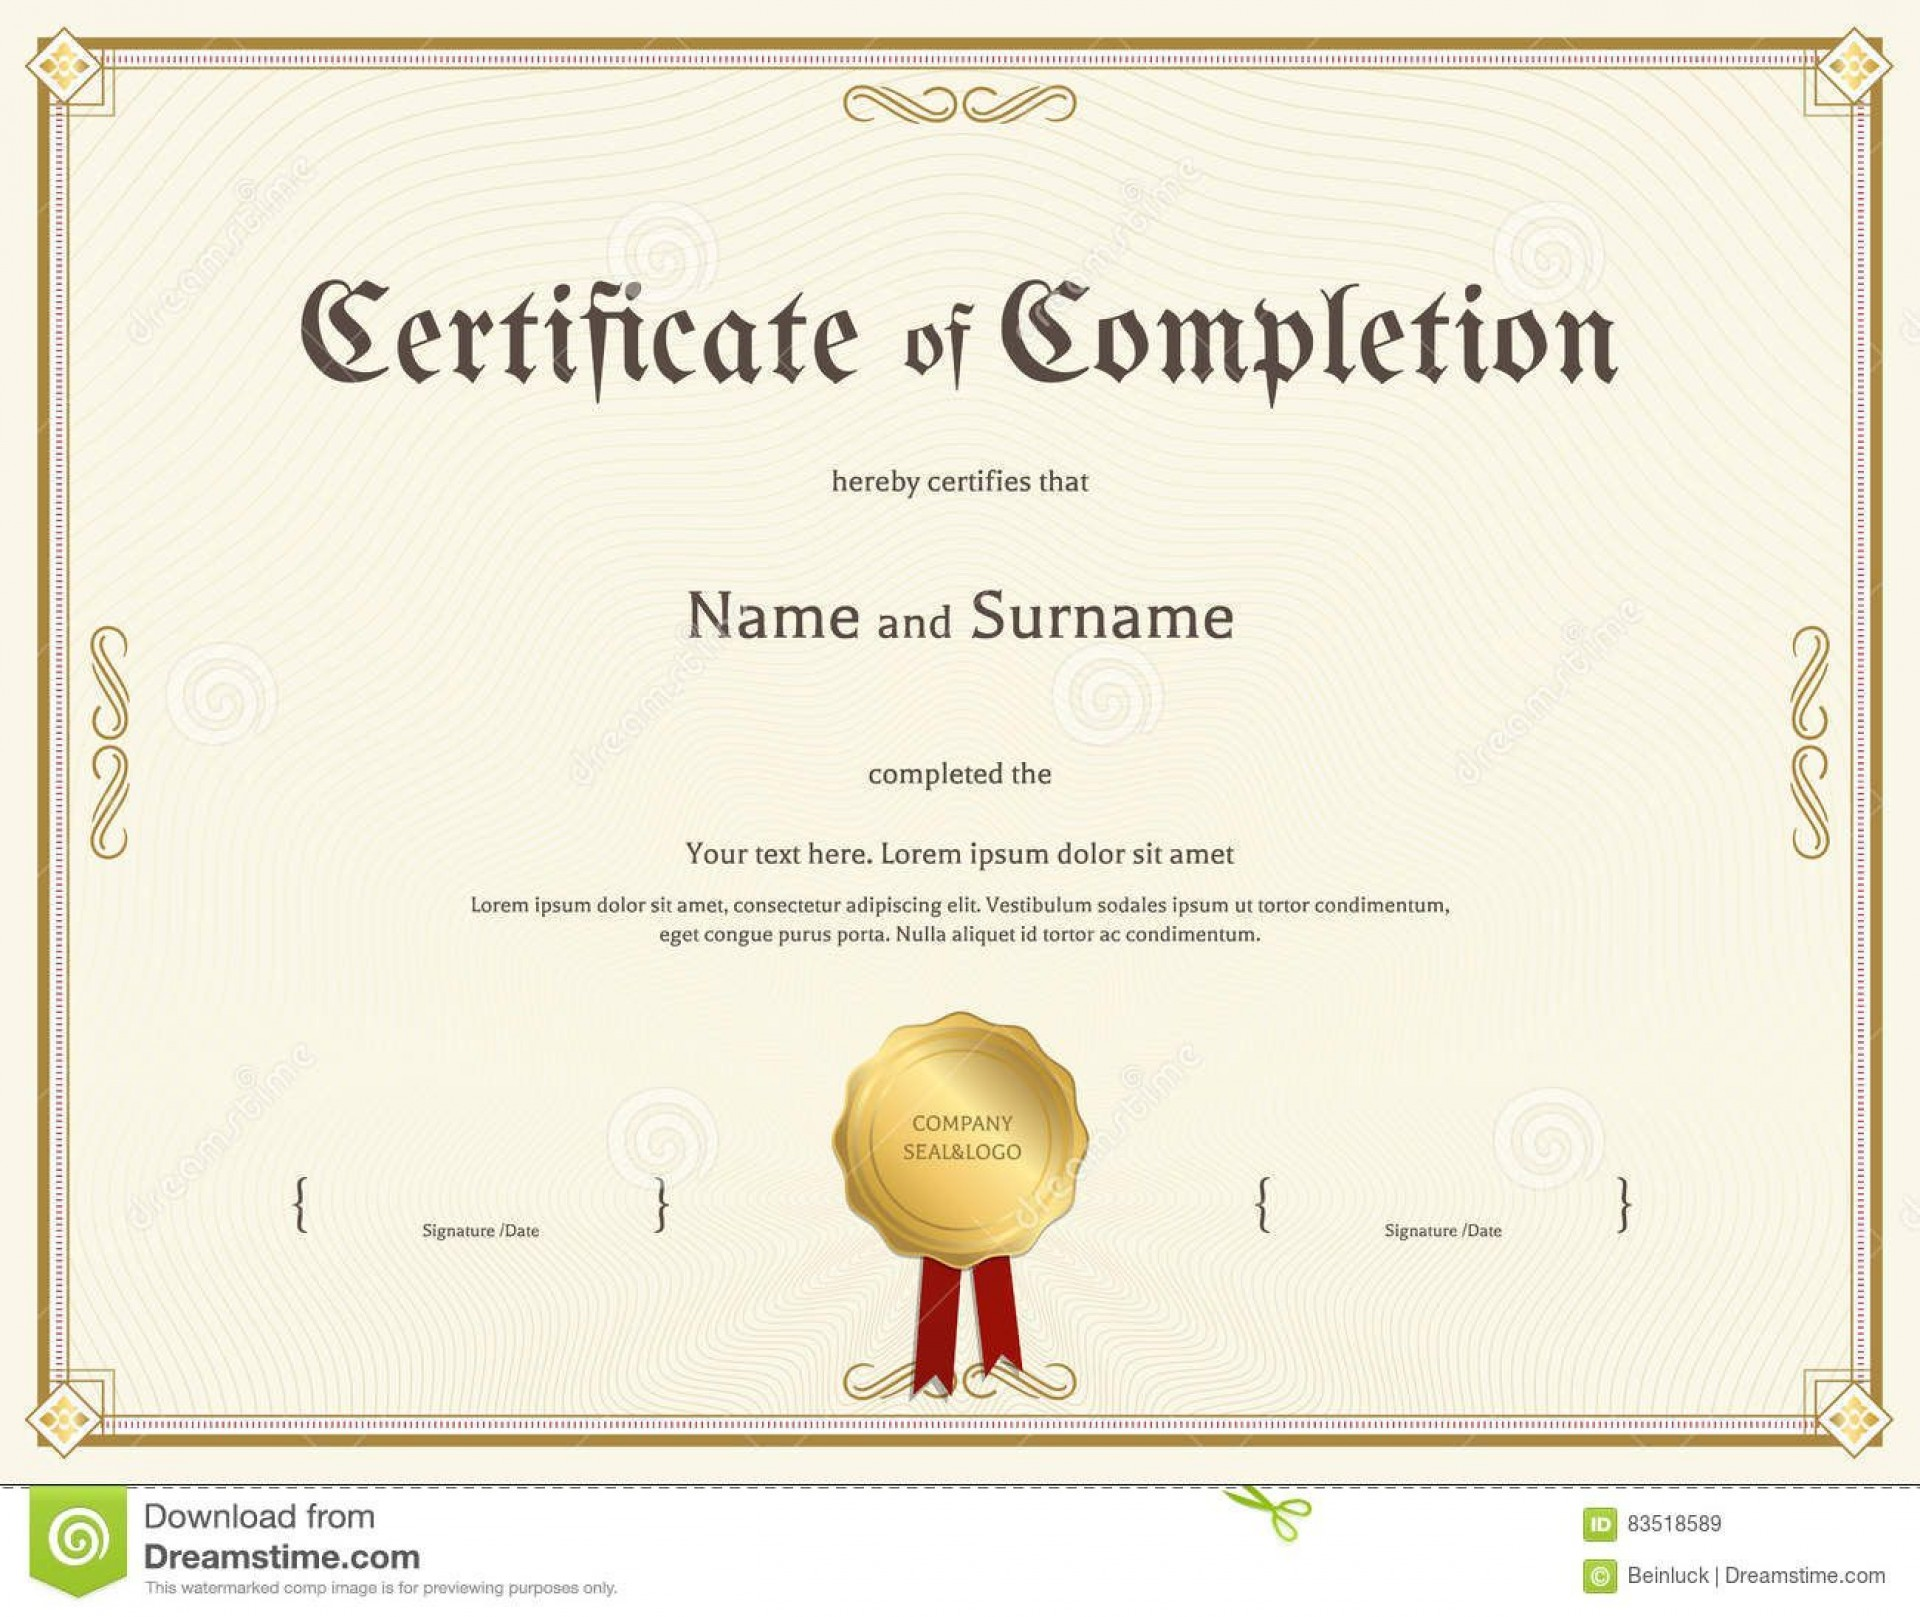 003 Awesome Free Certificate Of Completion Template Picture  Blank Printable Download Word Pdf1920